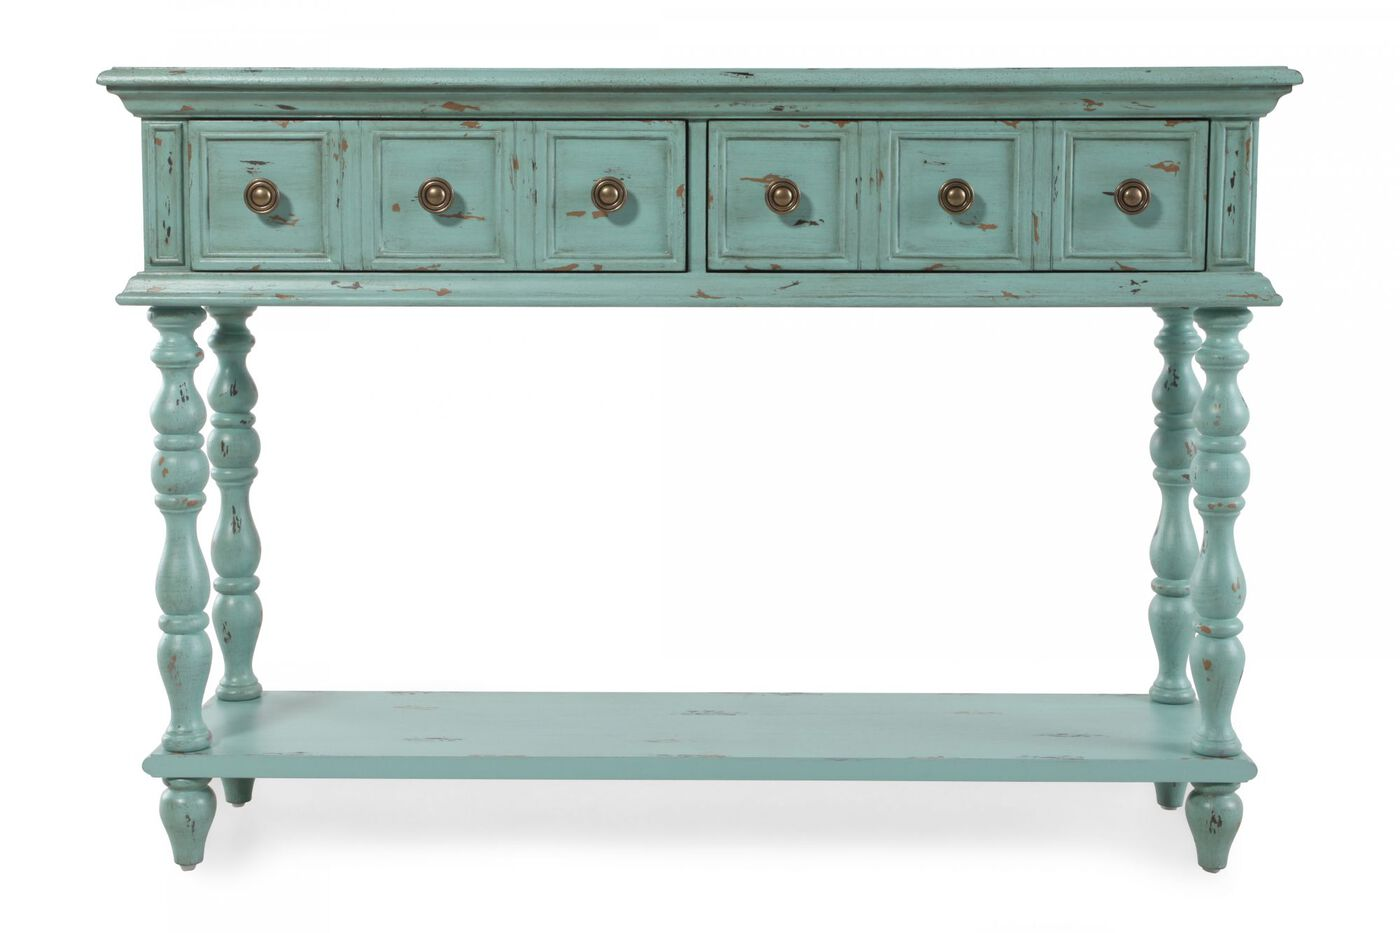 Paneled front contemporary console table in teal mathis for Sofa table vs console table